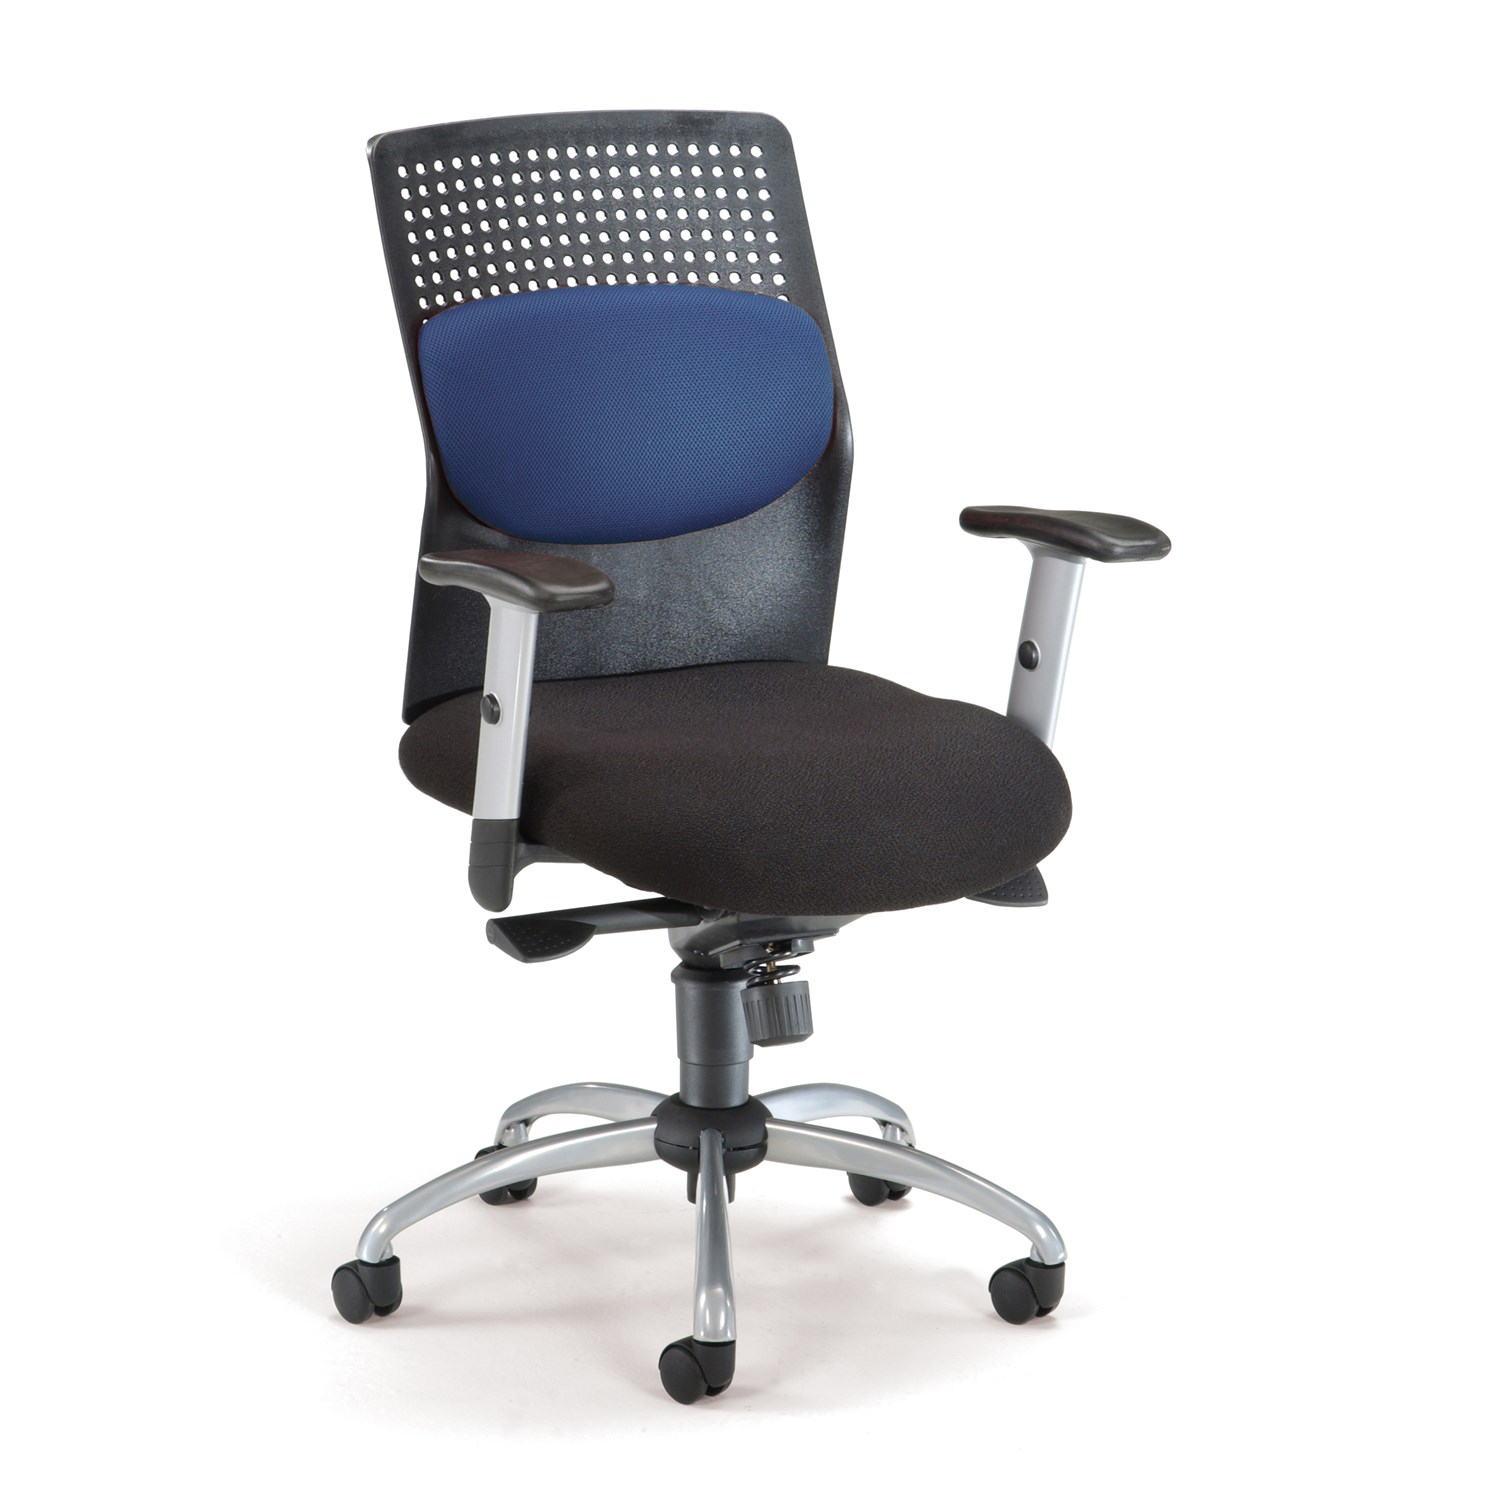 office chair reviews baby shower rental in brooklyn anything furniture blog ofm